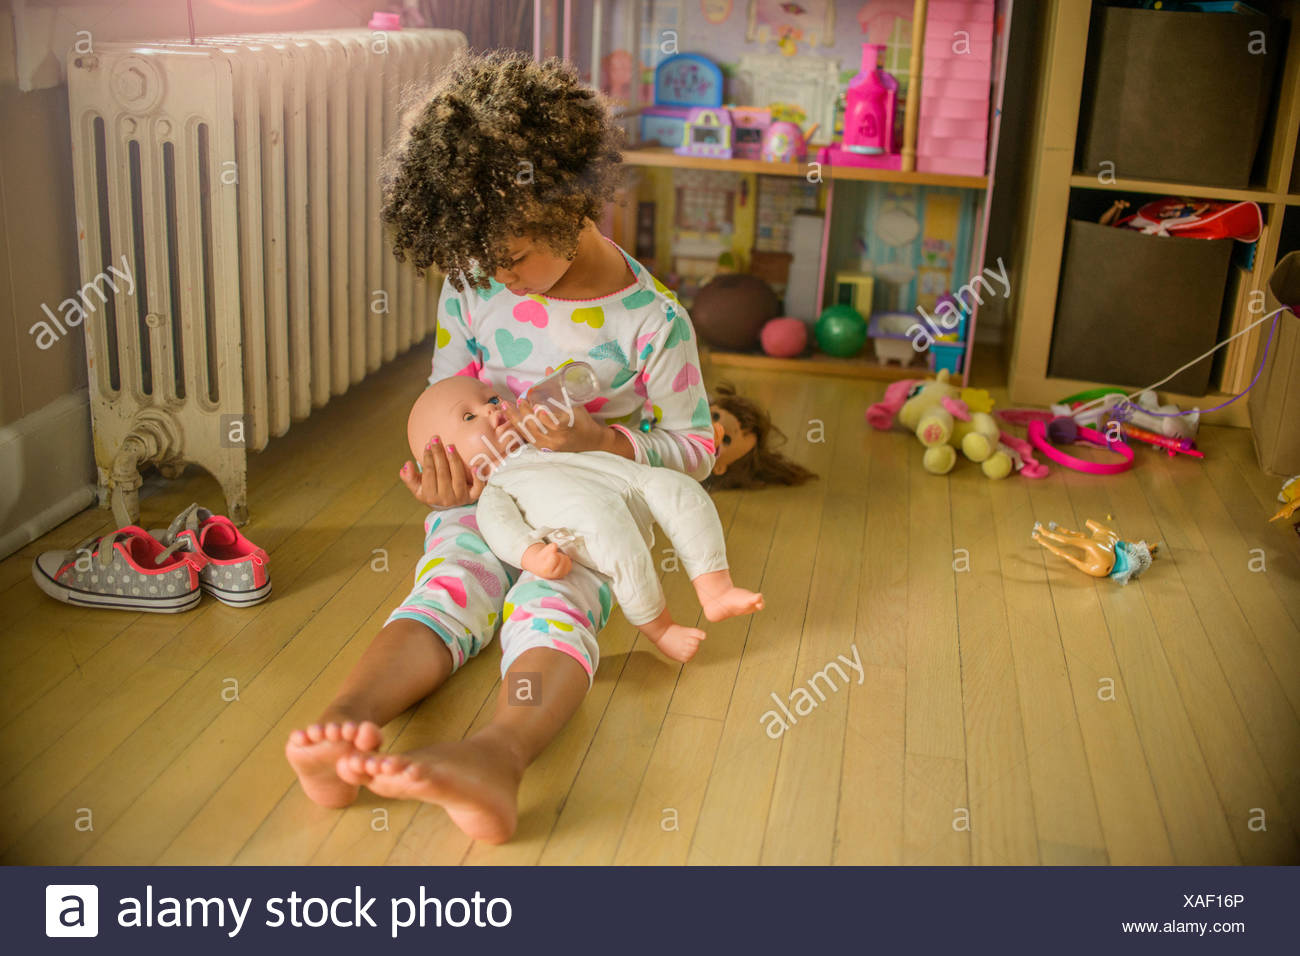 Girl sitting on floor jeux poupée d'alimentation Photo Stock